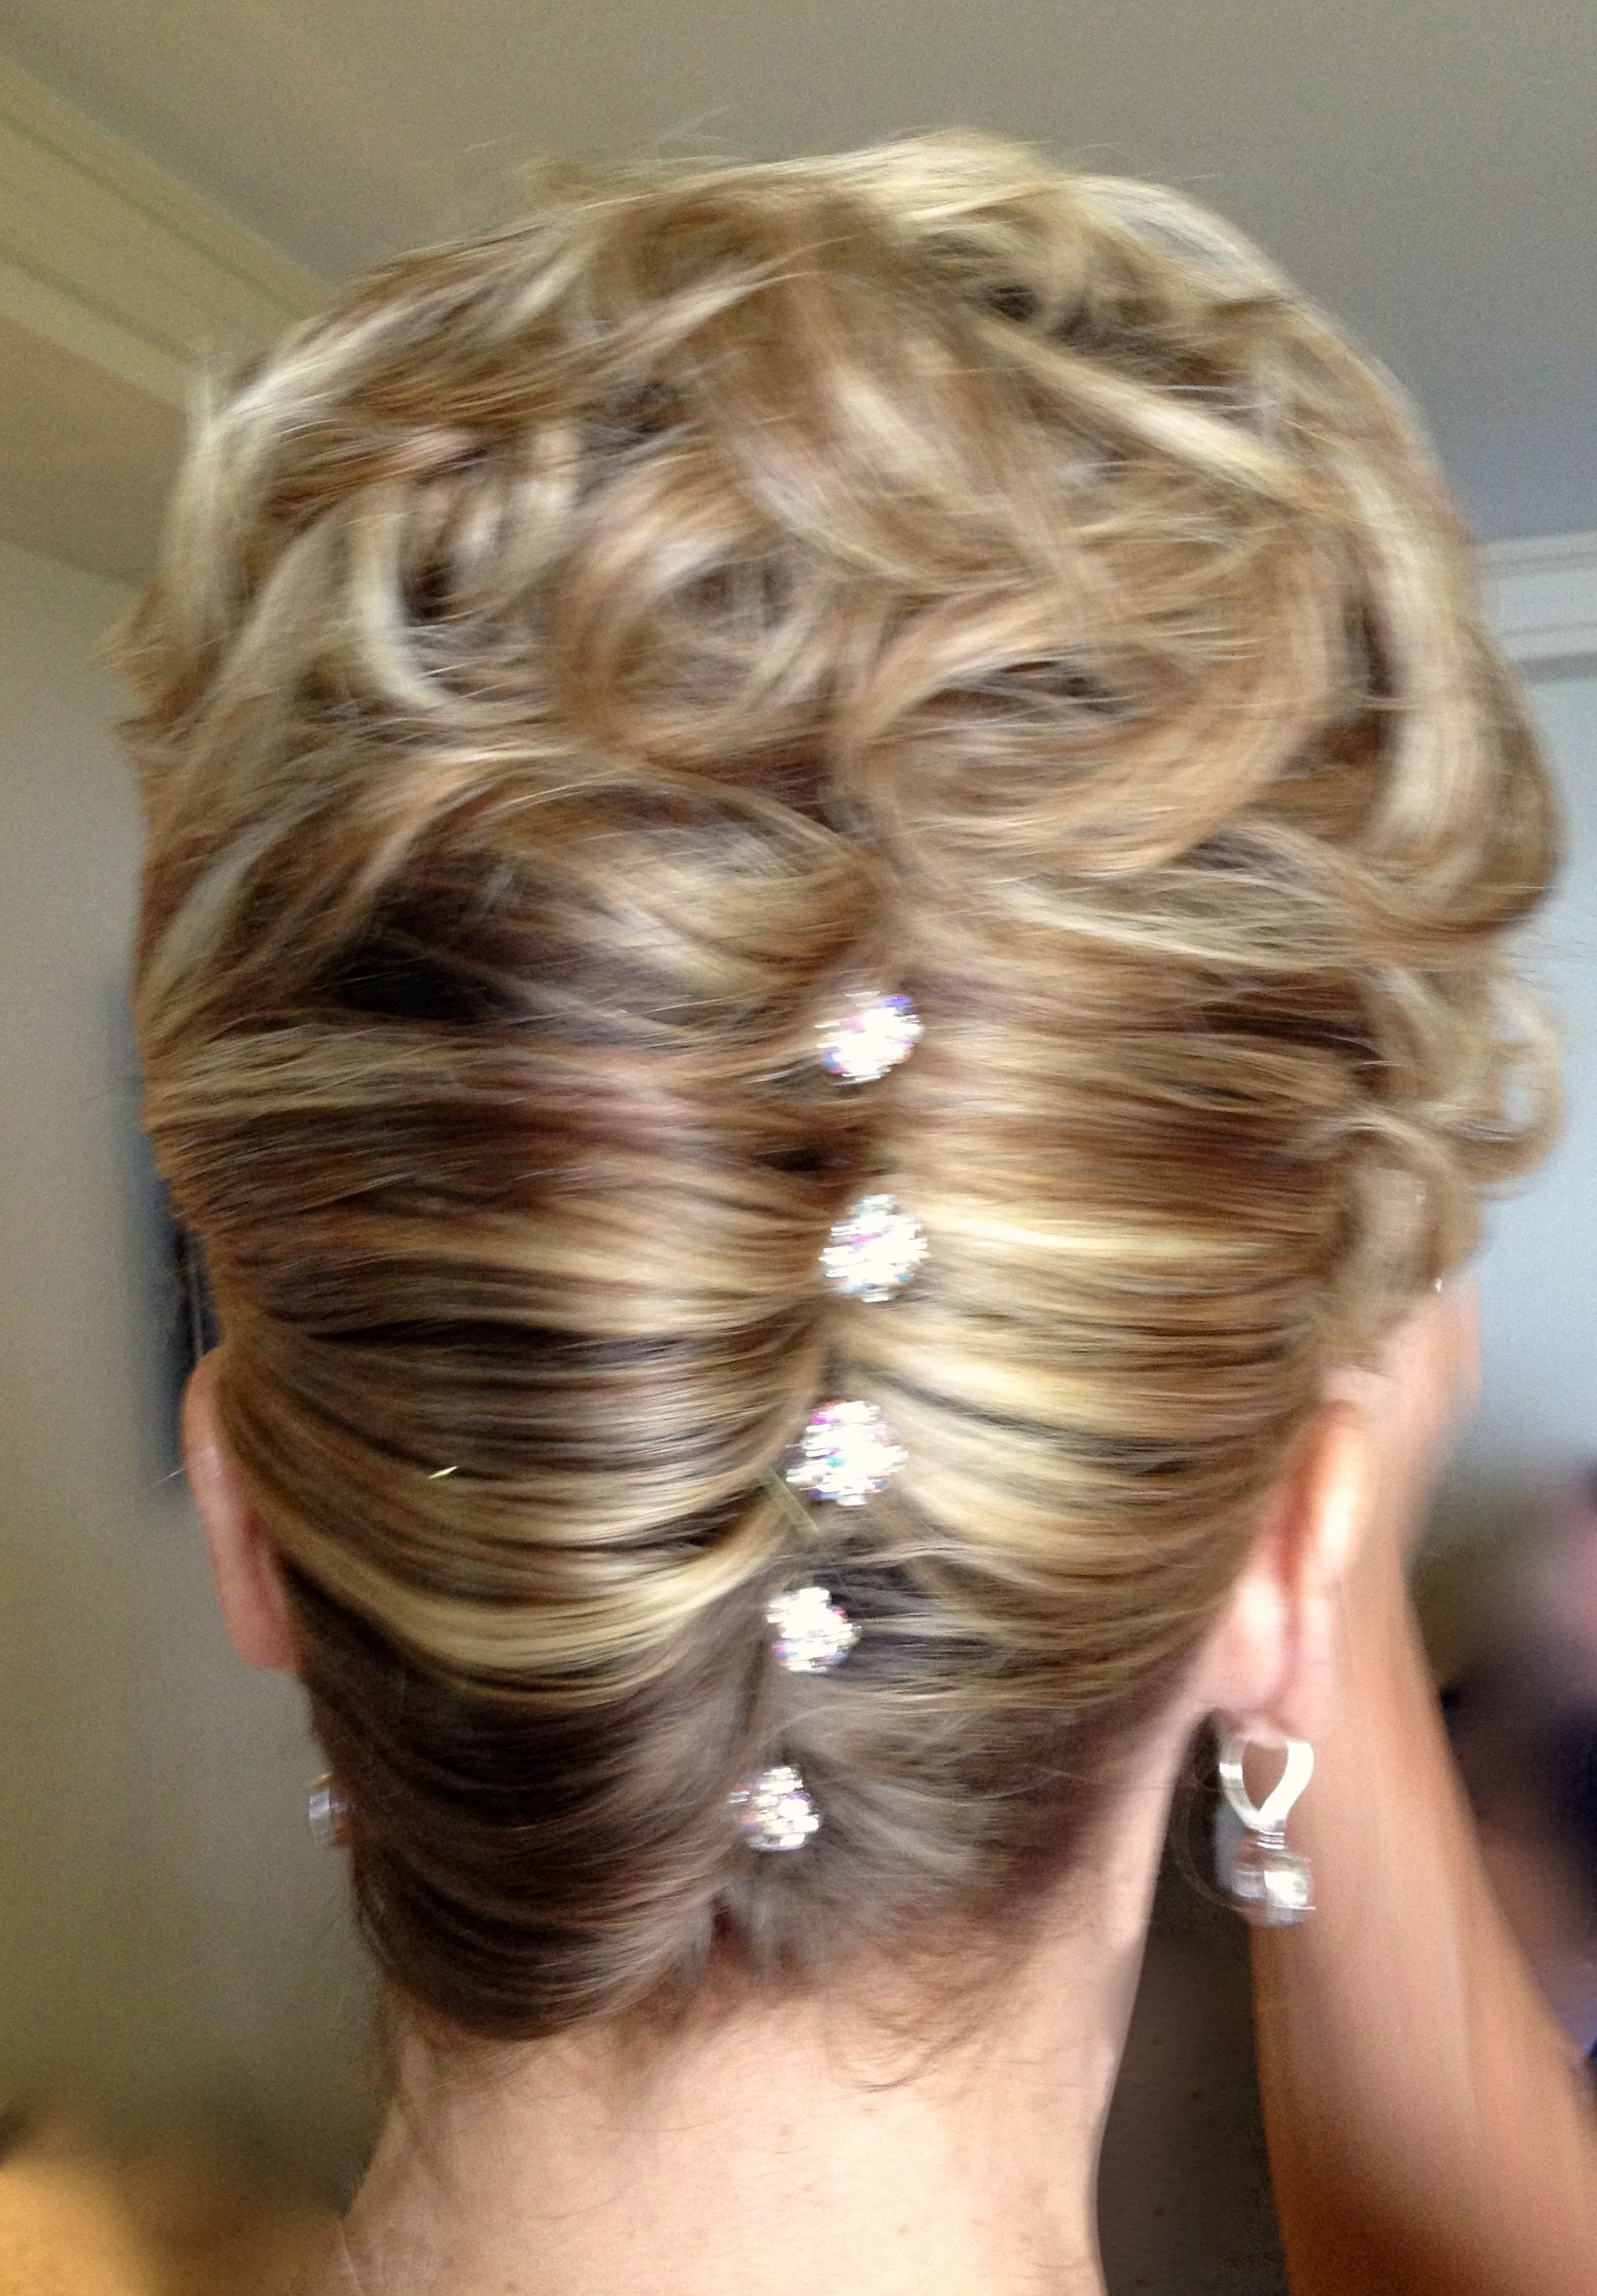 Mother Of The Bride Classic French Twist With A Little Sparkle Mother Of The Groom Hairstyles Mother Of The Bride Hair Hair Styles